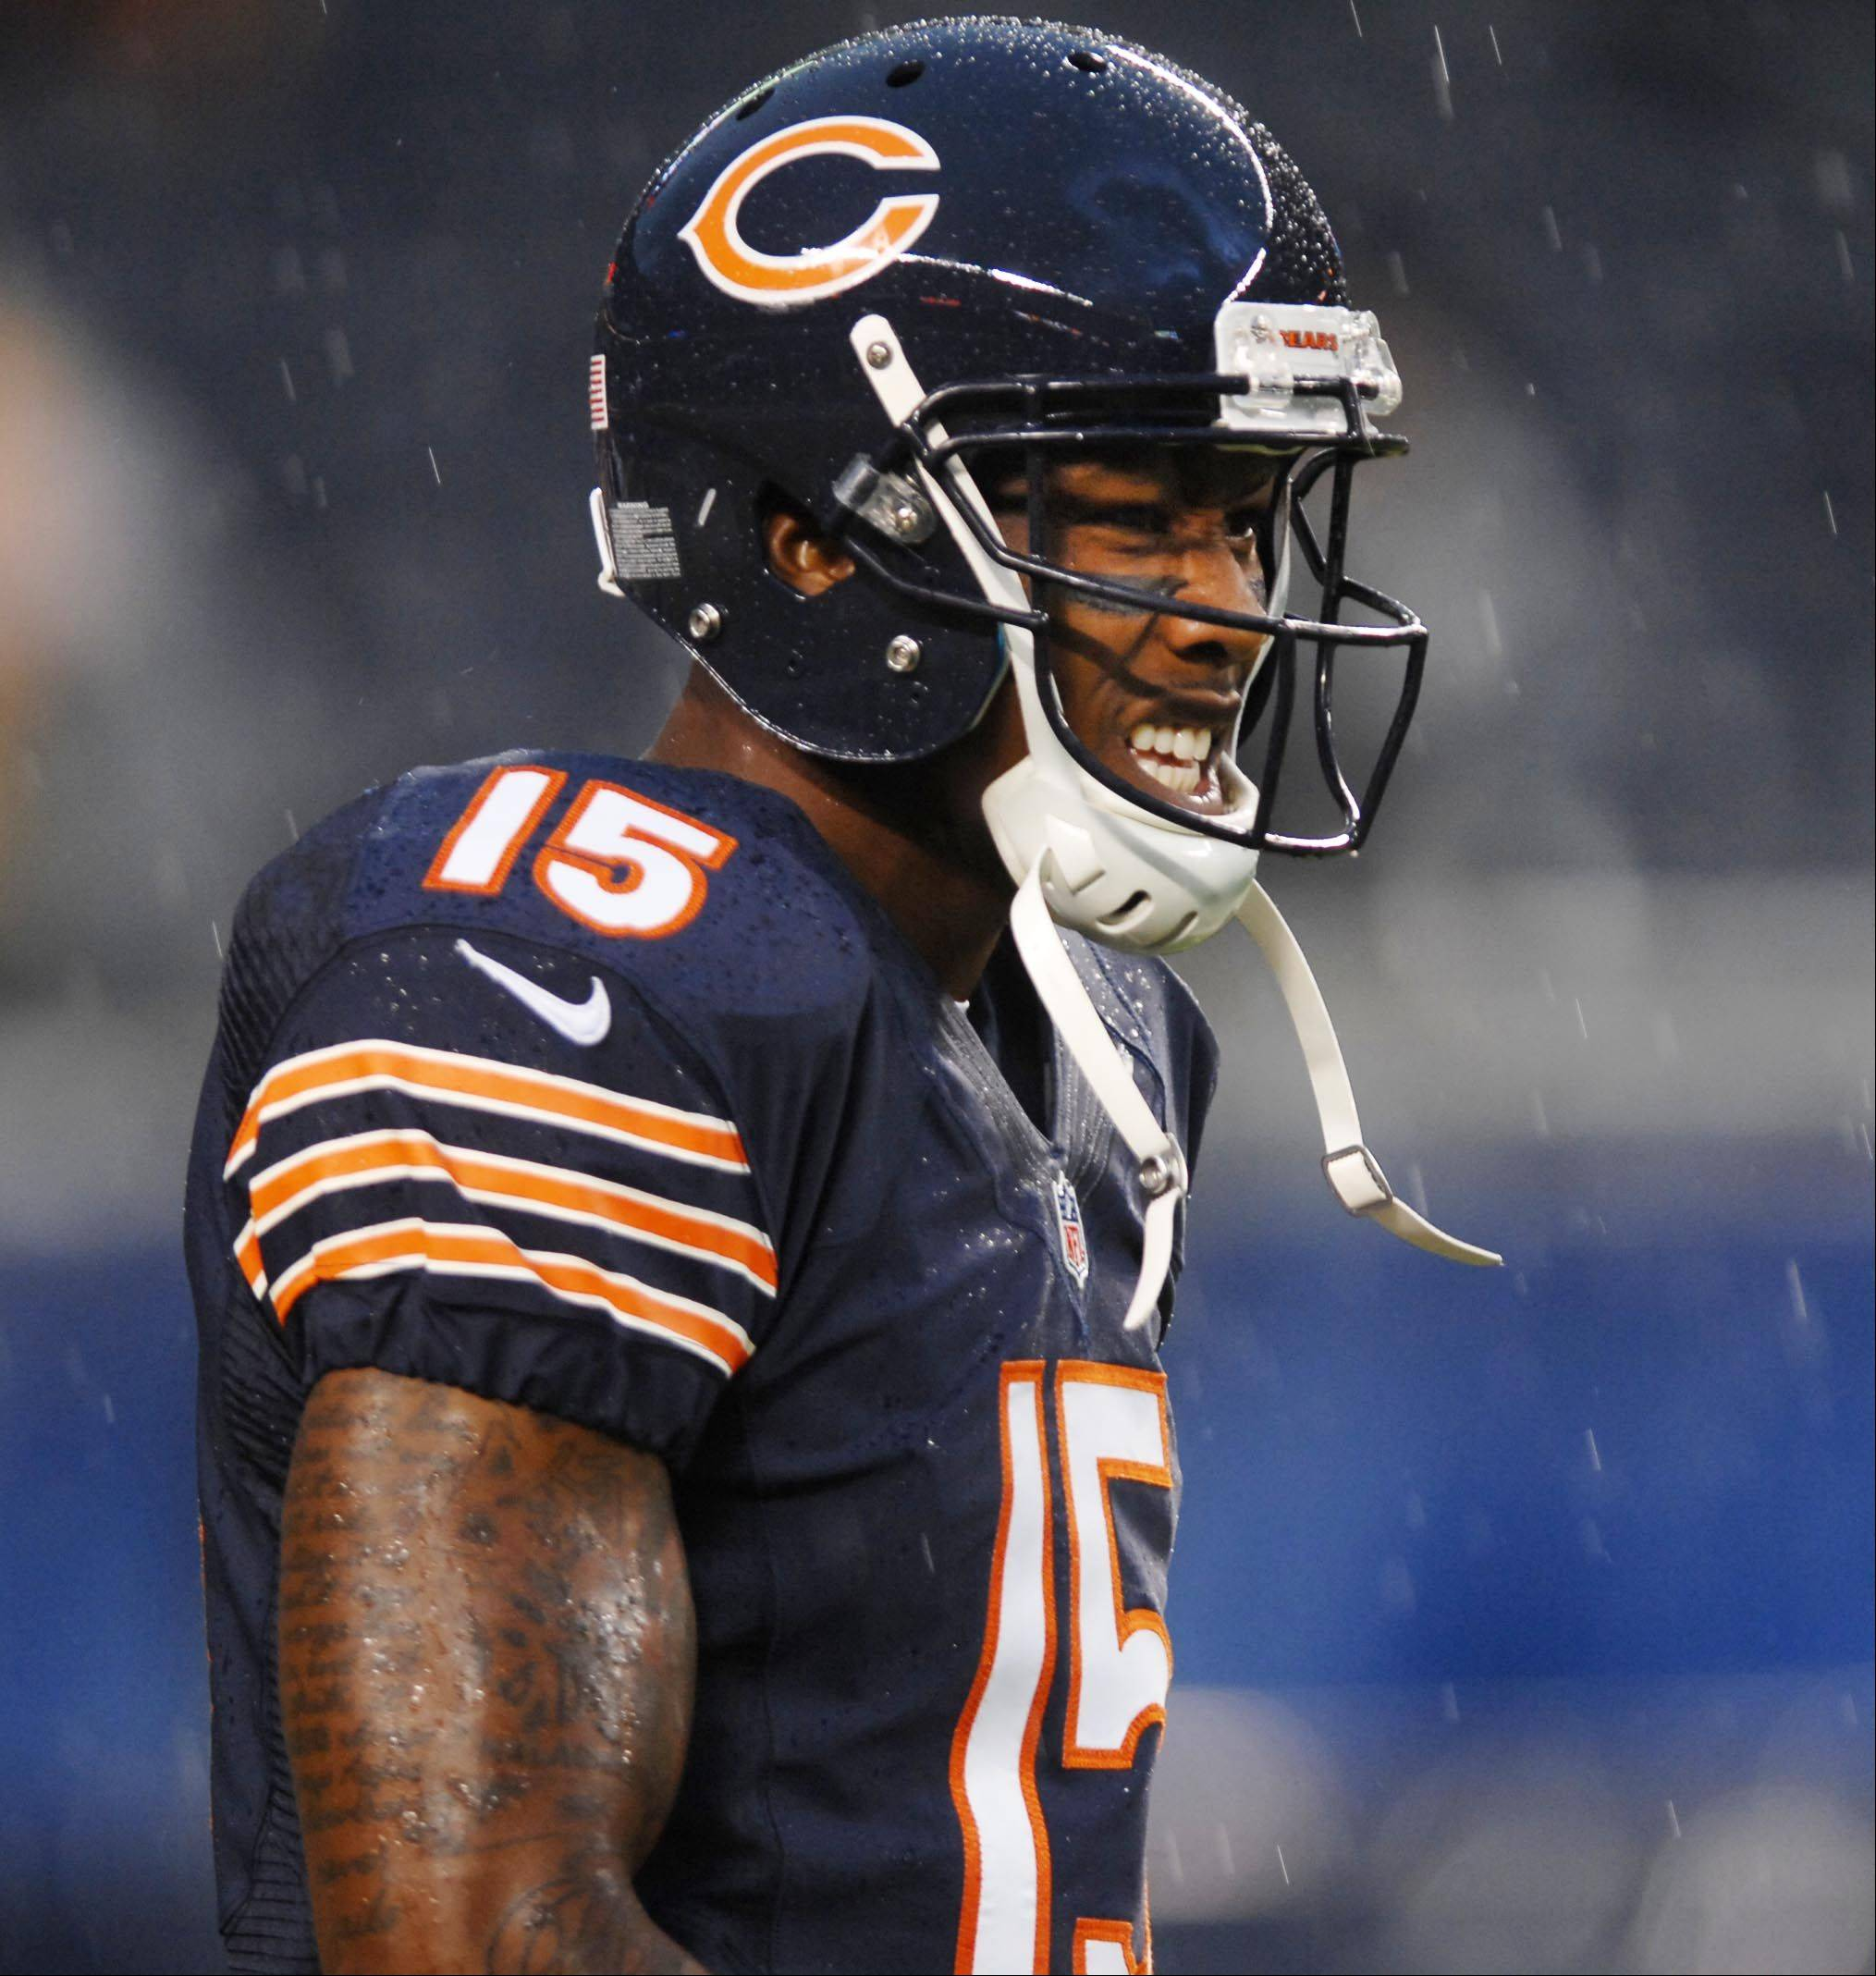 Chicago Bears wide receiver Brandon Marshall.